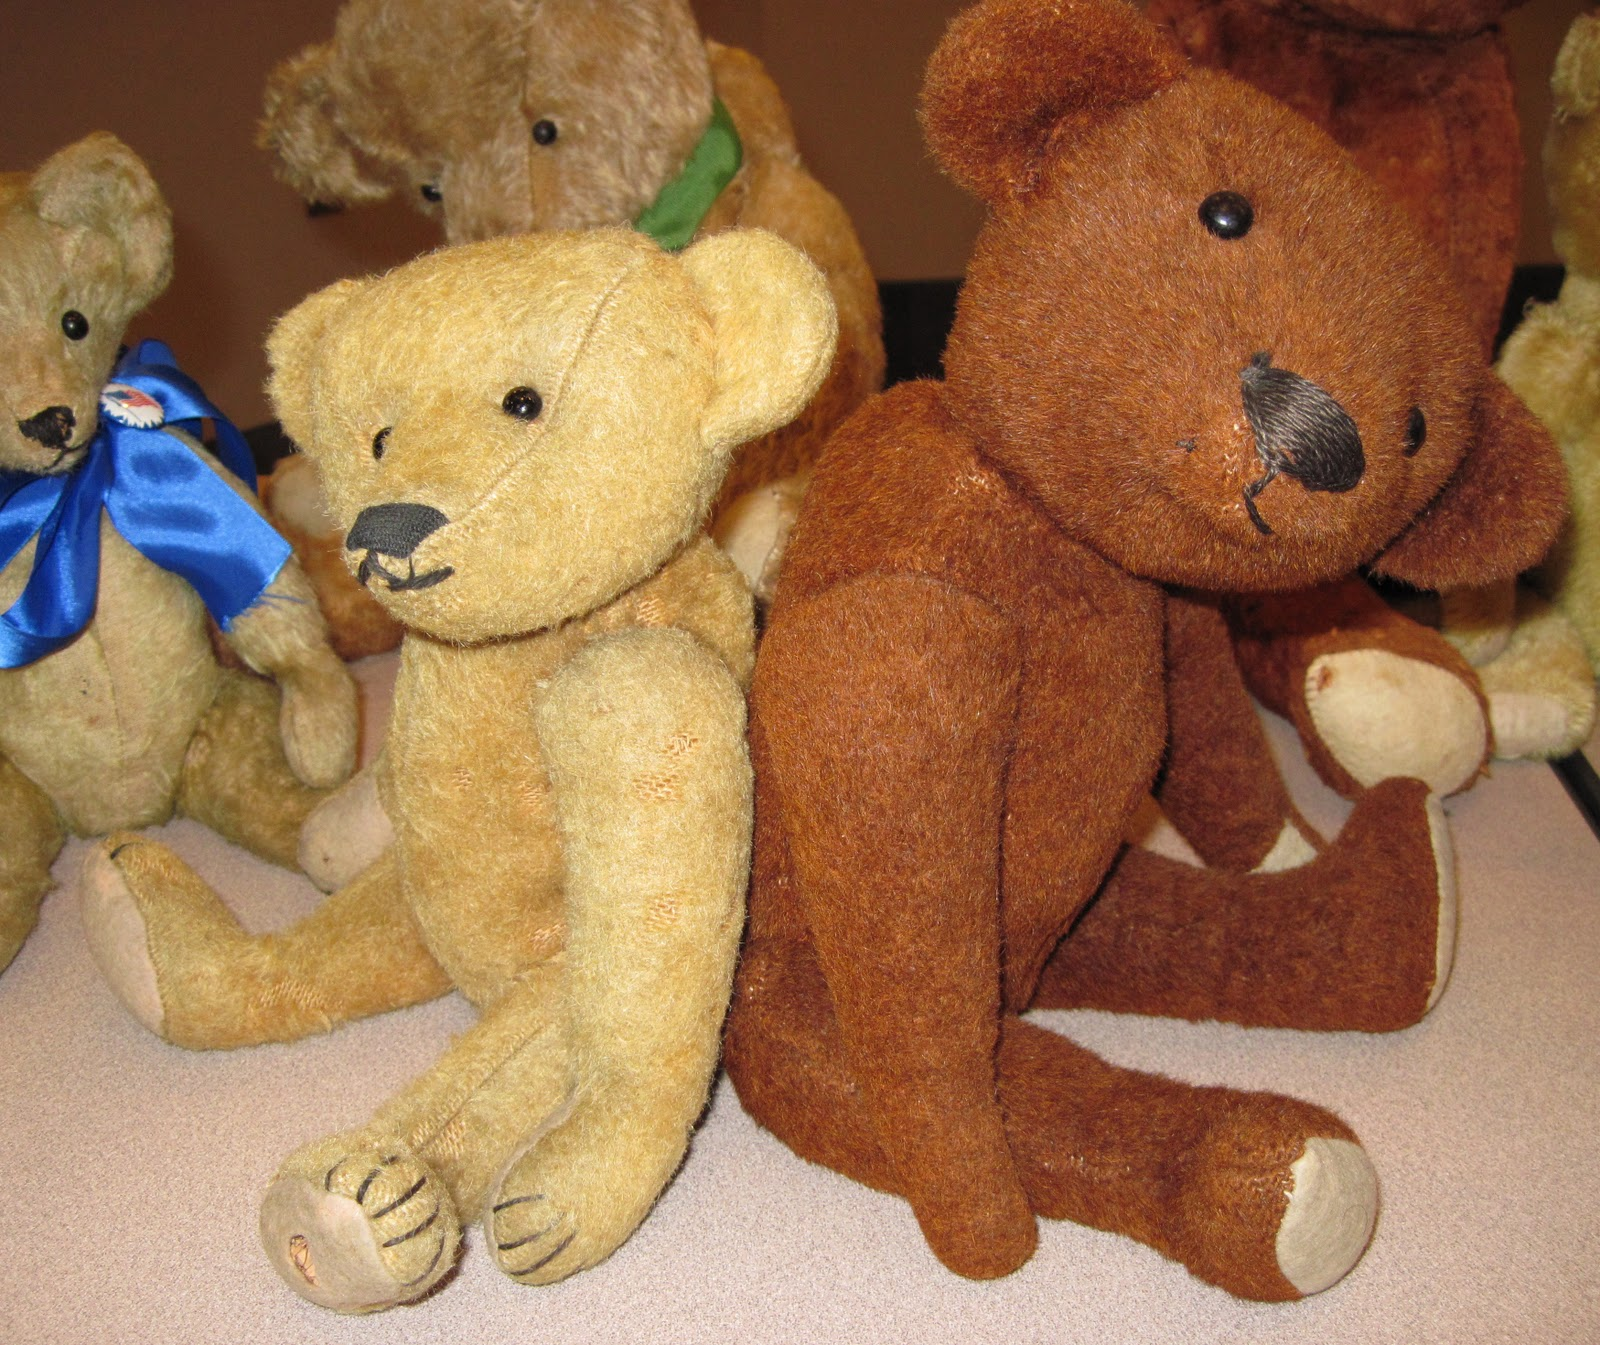 teddy bear dating sites This site is billed by 24-7helpnet 800-425-9886 scottish dating service is part of the online connections dating network, which includes many other general and scottish dating sites as a member of scottish dating service, your profile will automatically be shown on related scottish dating sites or to related users in the online connections.